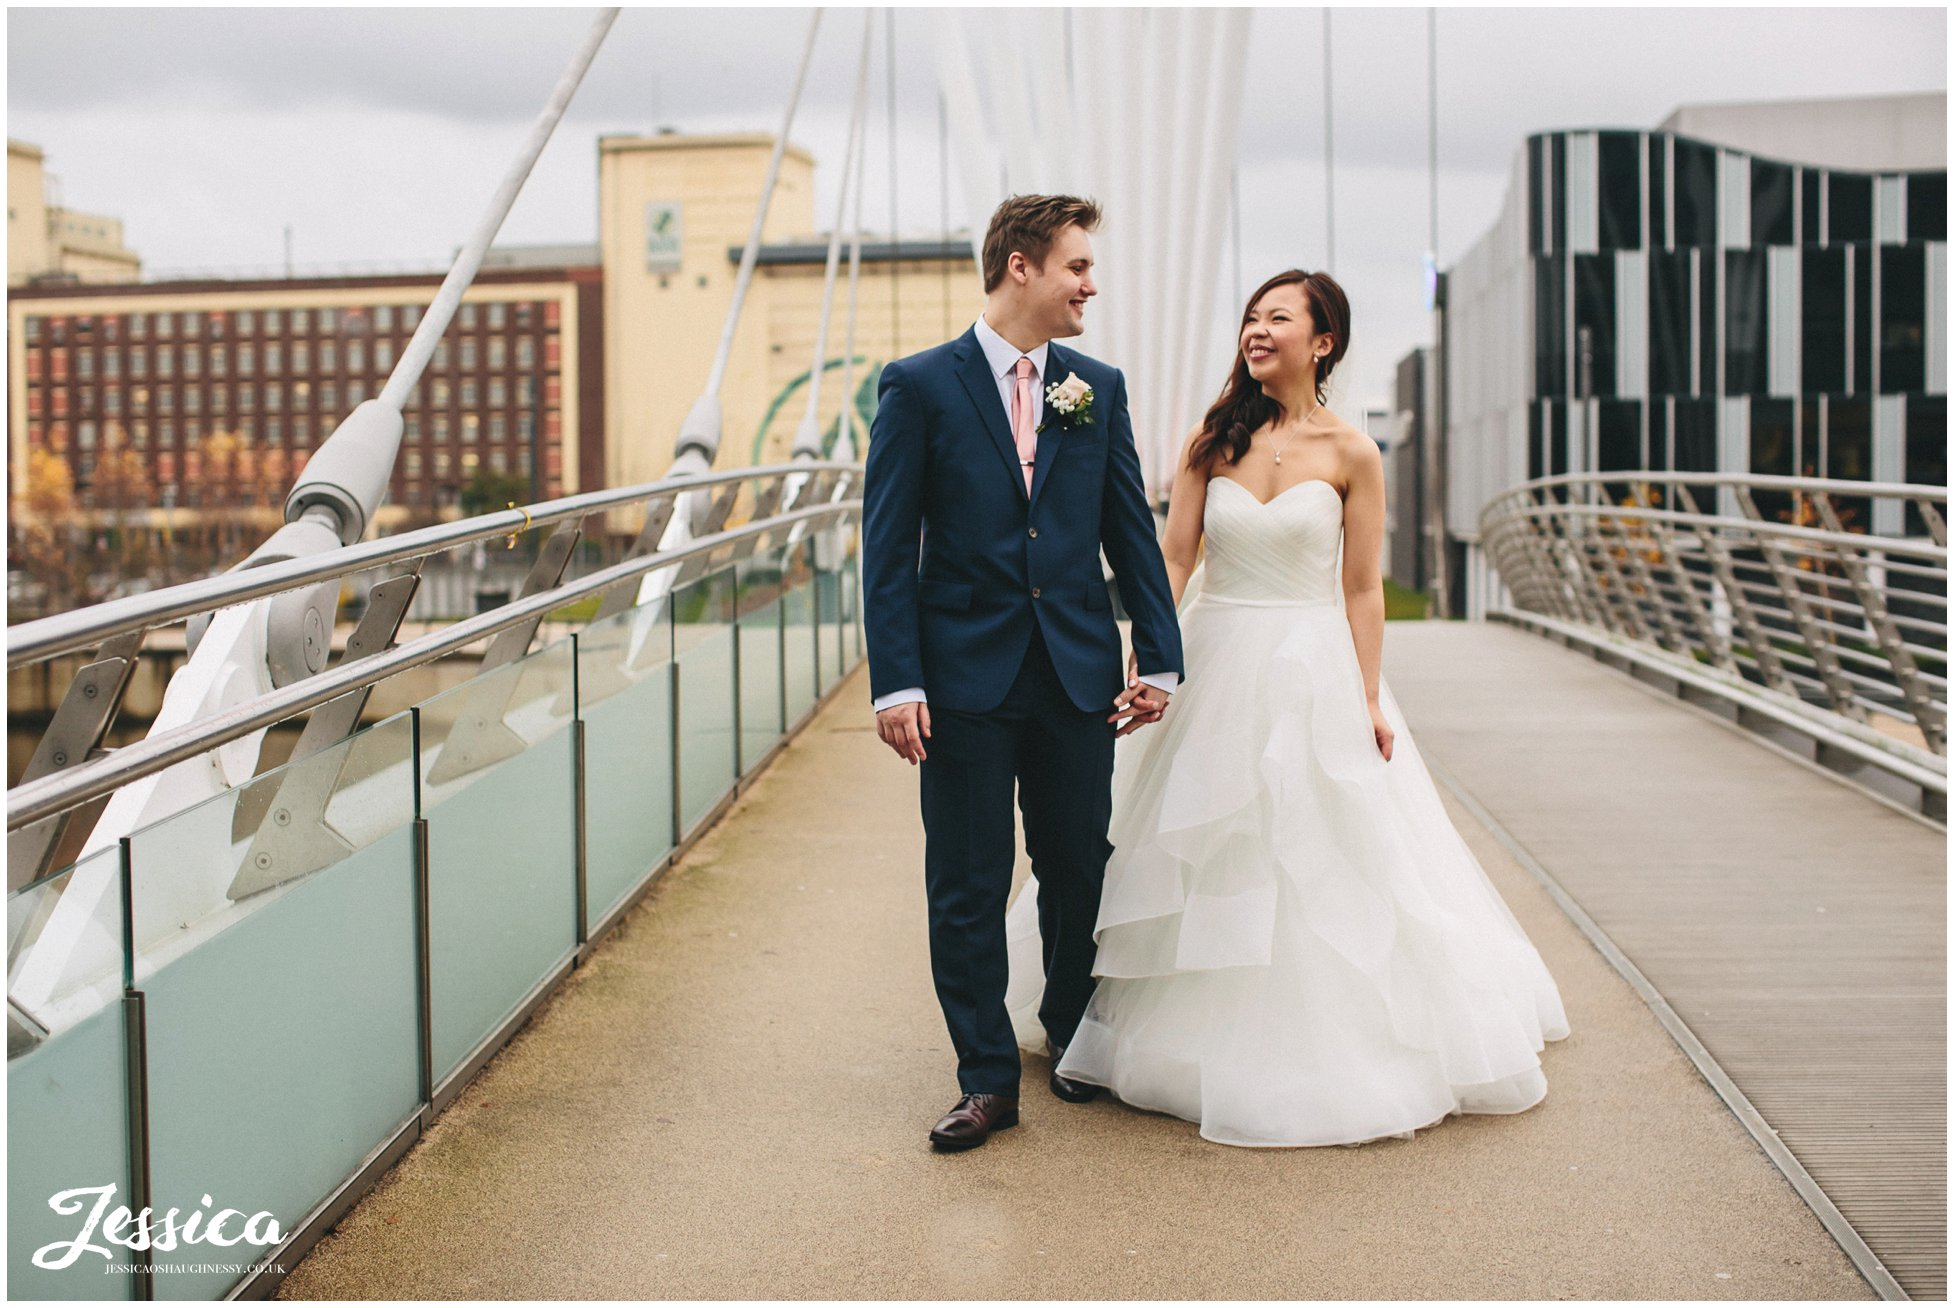 newly weds walk hand in hand over The Media City Footbridge - manchester wedding photographer